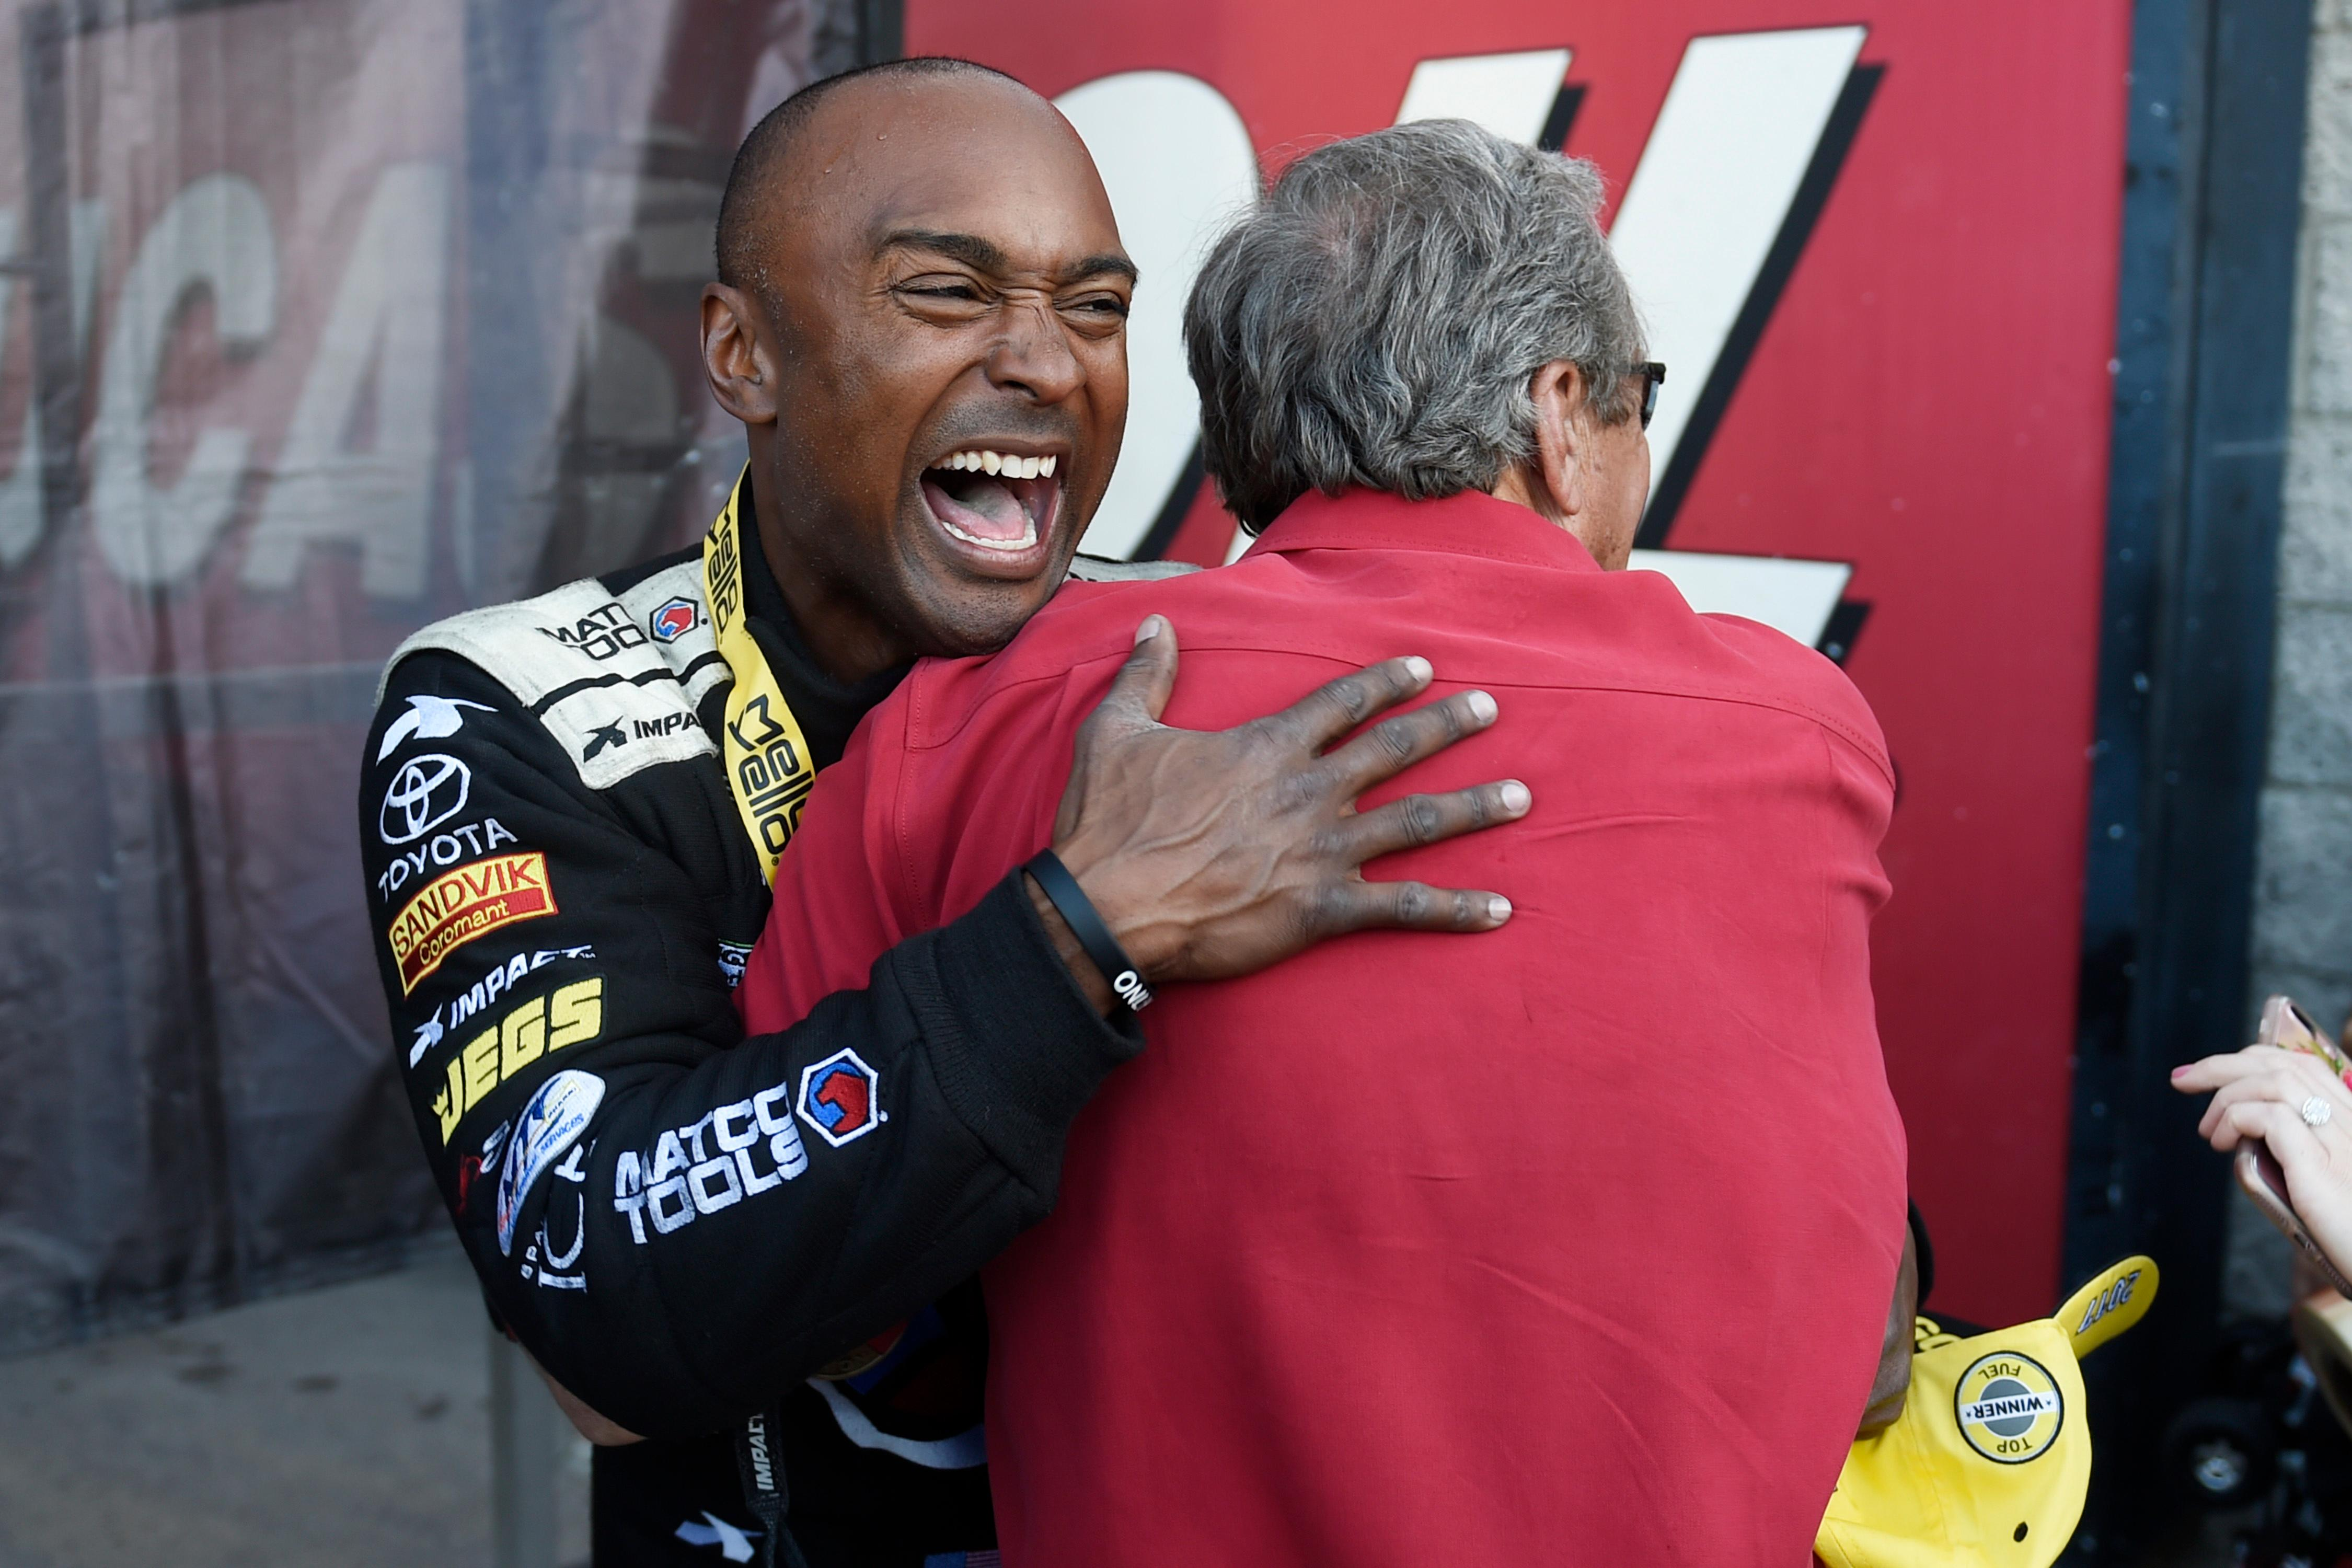 Top Fuel winner Antron Brown hugs team owner Don Schumacher during the NHRA DENSO Spark Plug Nationals at The Strip at the Las Vegas Motor Speedway Sunday, April 2, 2017. (Sam Morris/Las Vegas News Bureau)